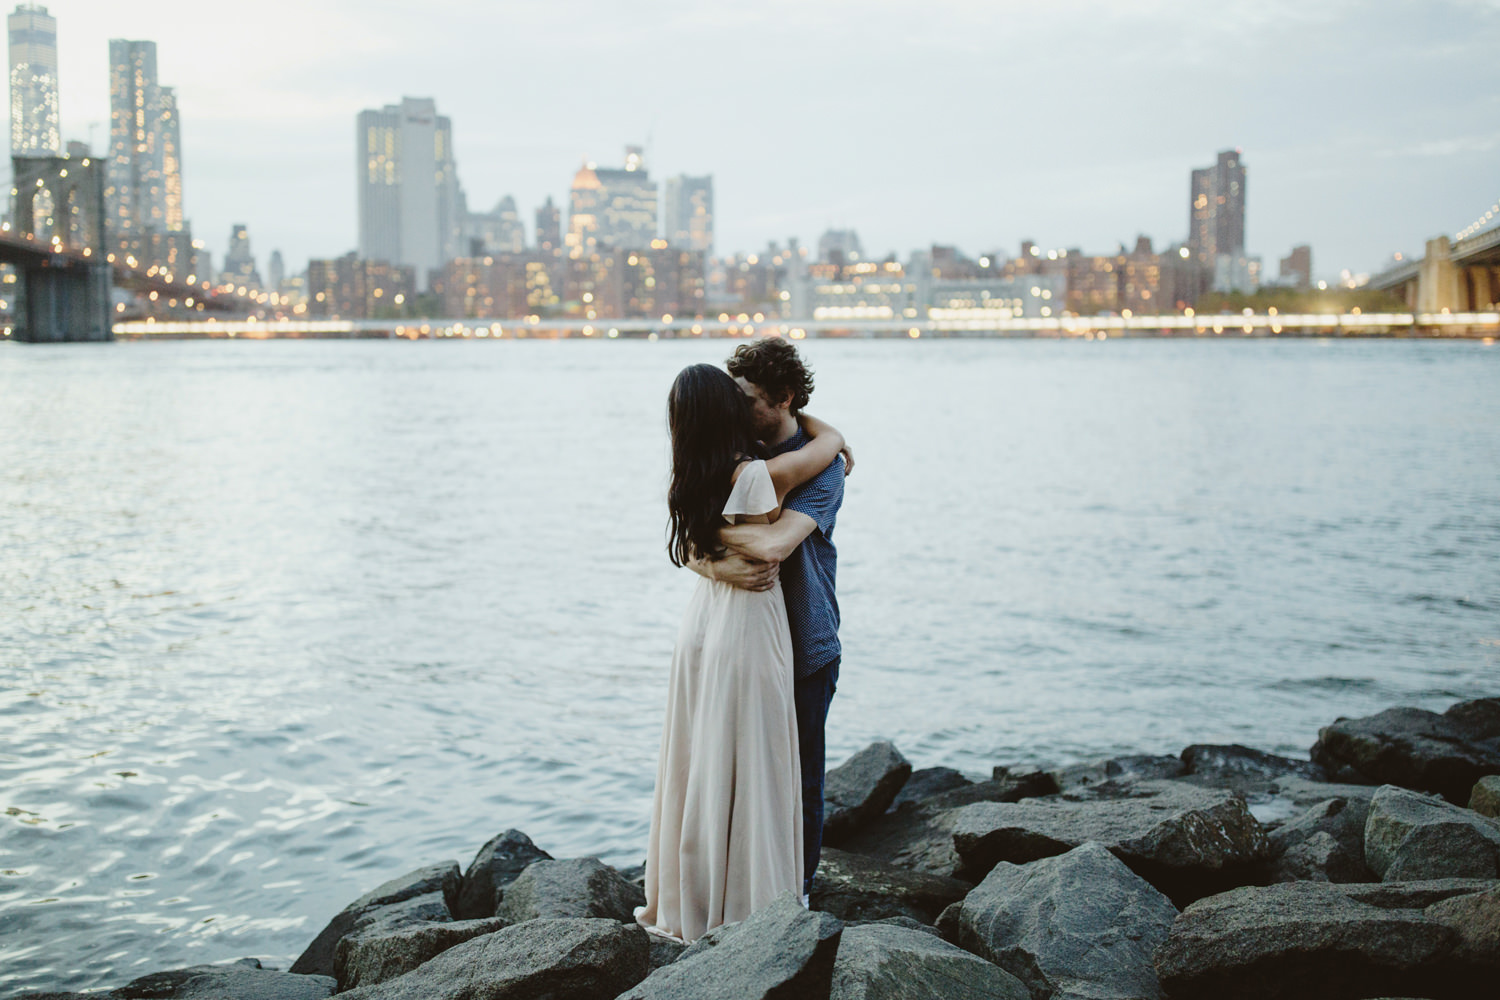 SAMMBLAKE_NYC_EASTVILLAGE_ENGAGEMENT_BAP_0274.jpg